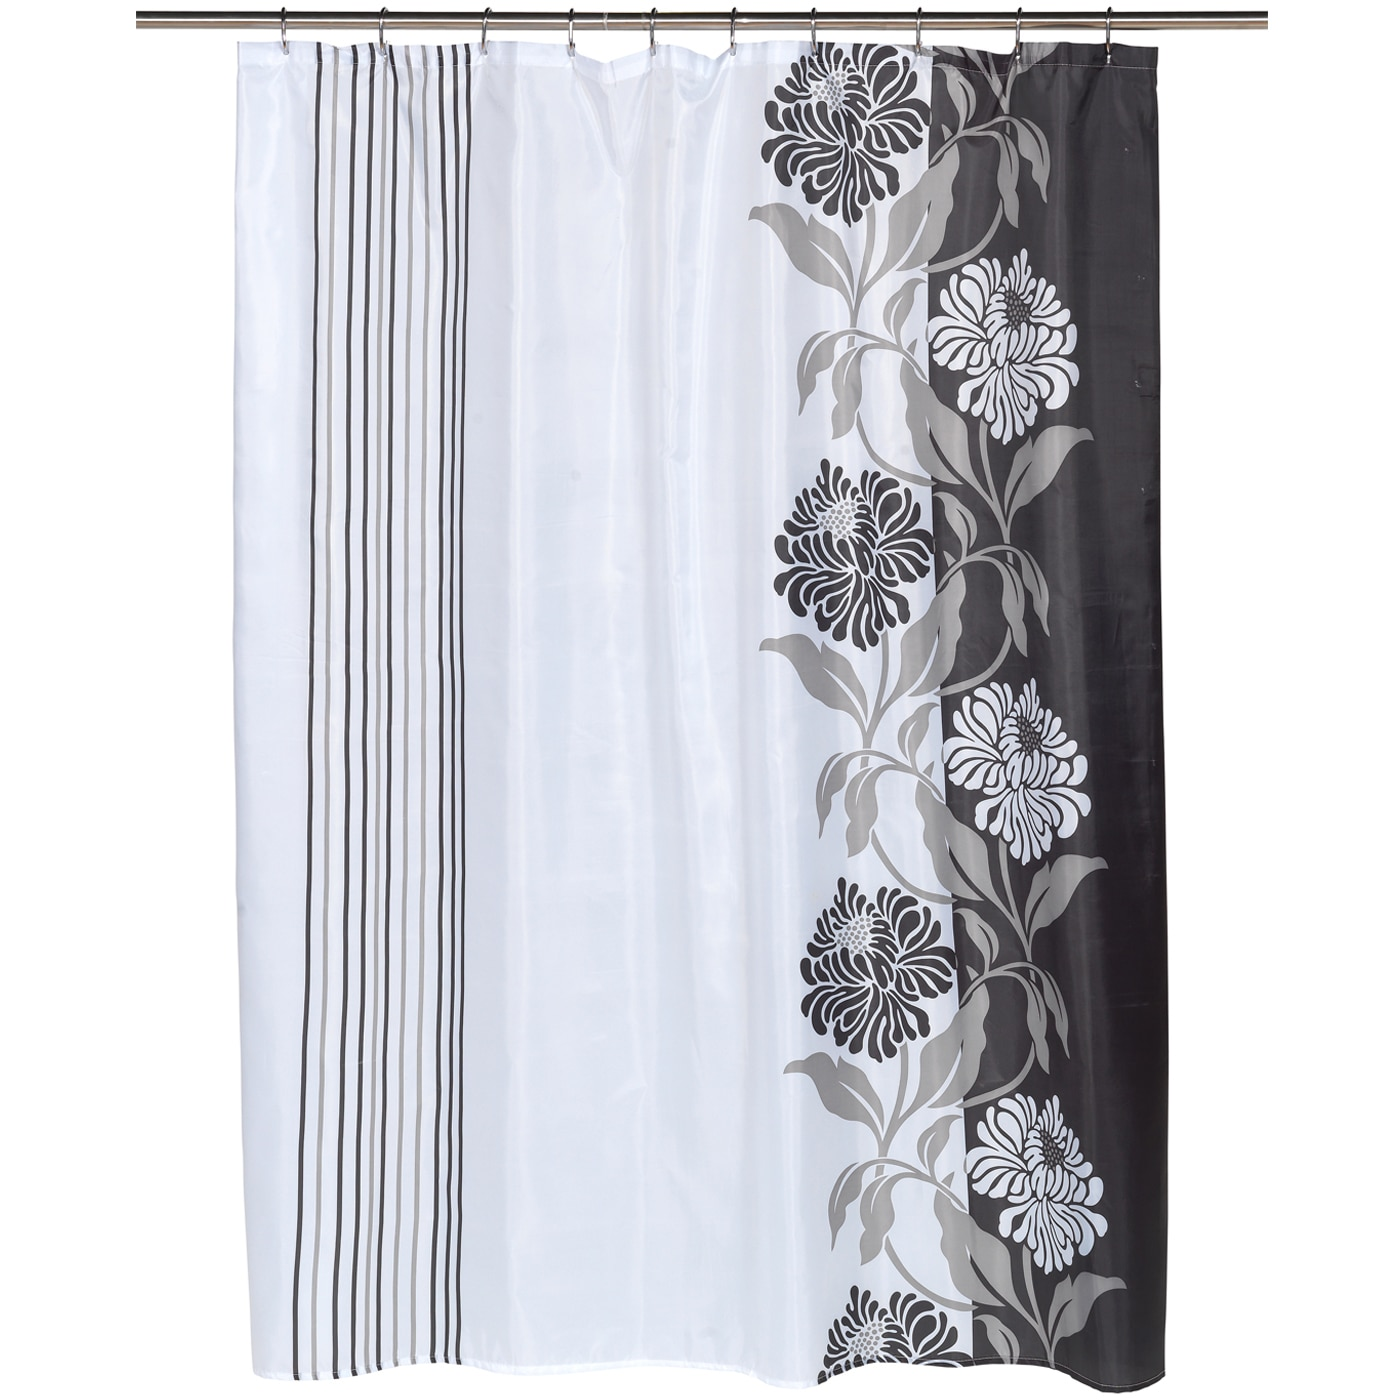 Shop Beautiful Black And White Flower Motif Extra Long Fabric Shower